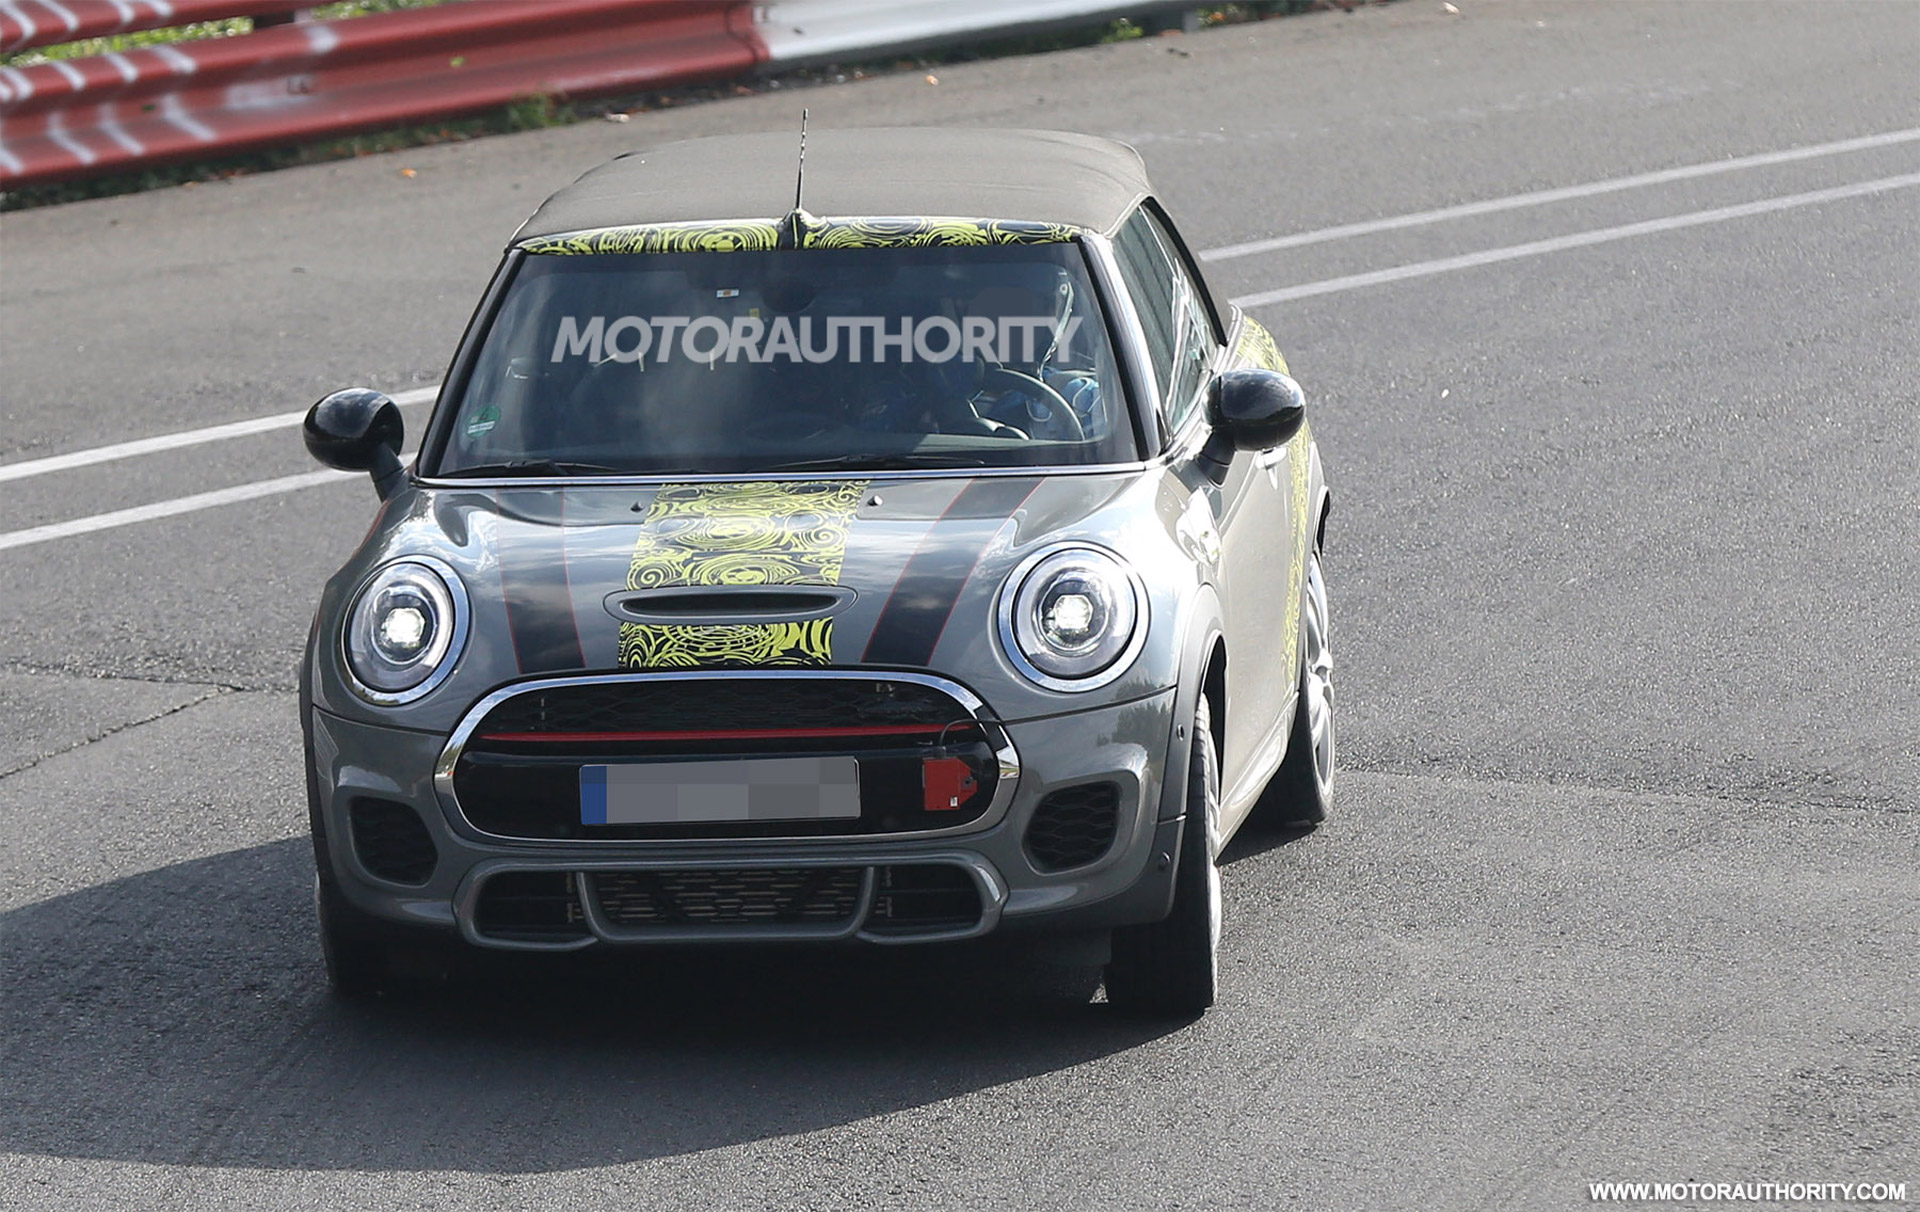 2016 MINI John Cooper Works Convertible Spy Shots